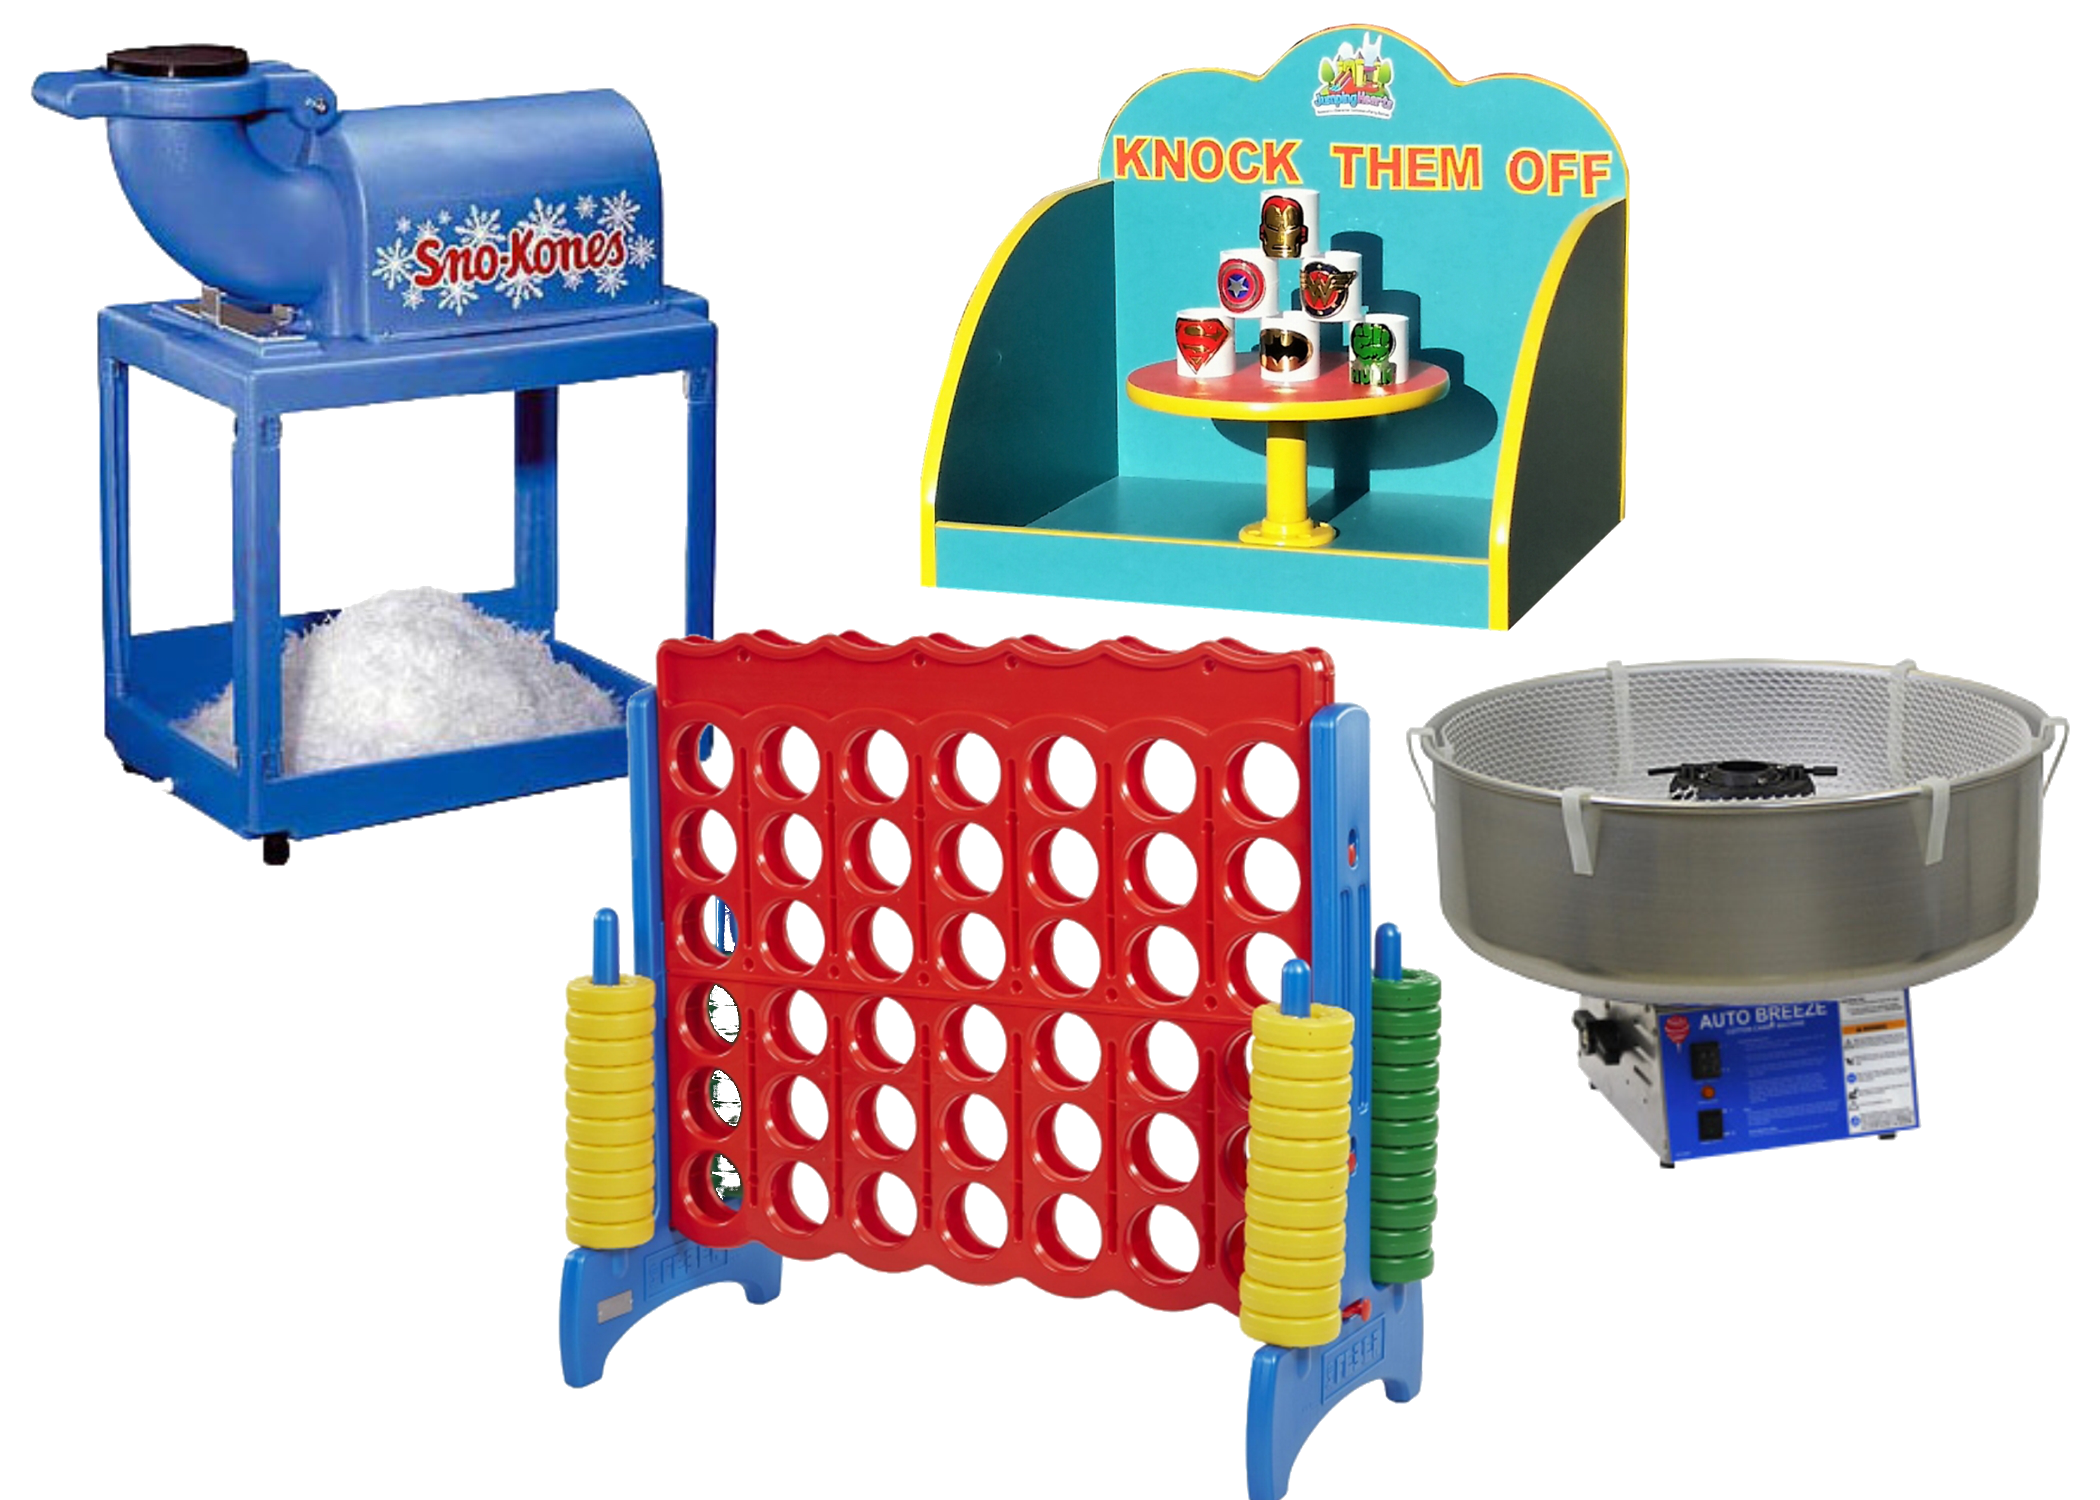 Concession machine rentals and carnival game rentals